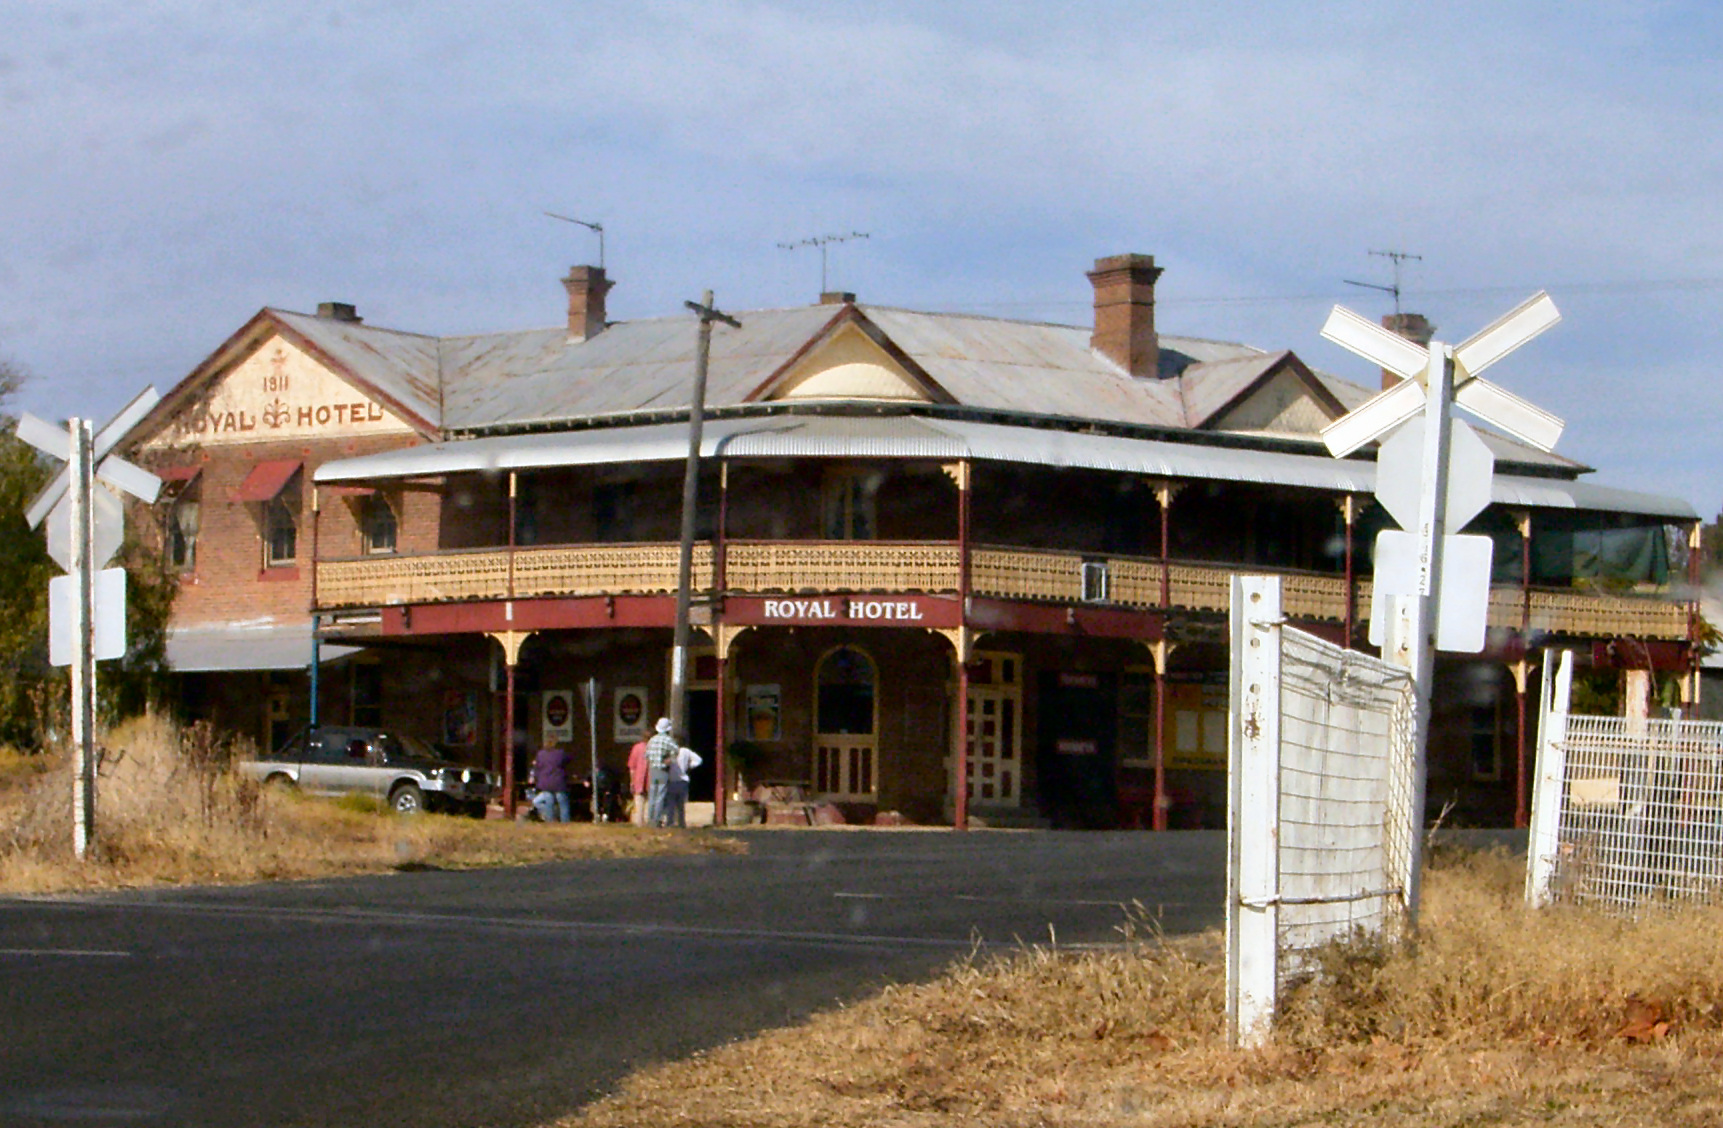 Gilgandra Australia  City pictures : The Royal Hotel at Woodstock Gilgandra, Australia